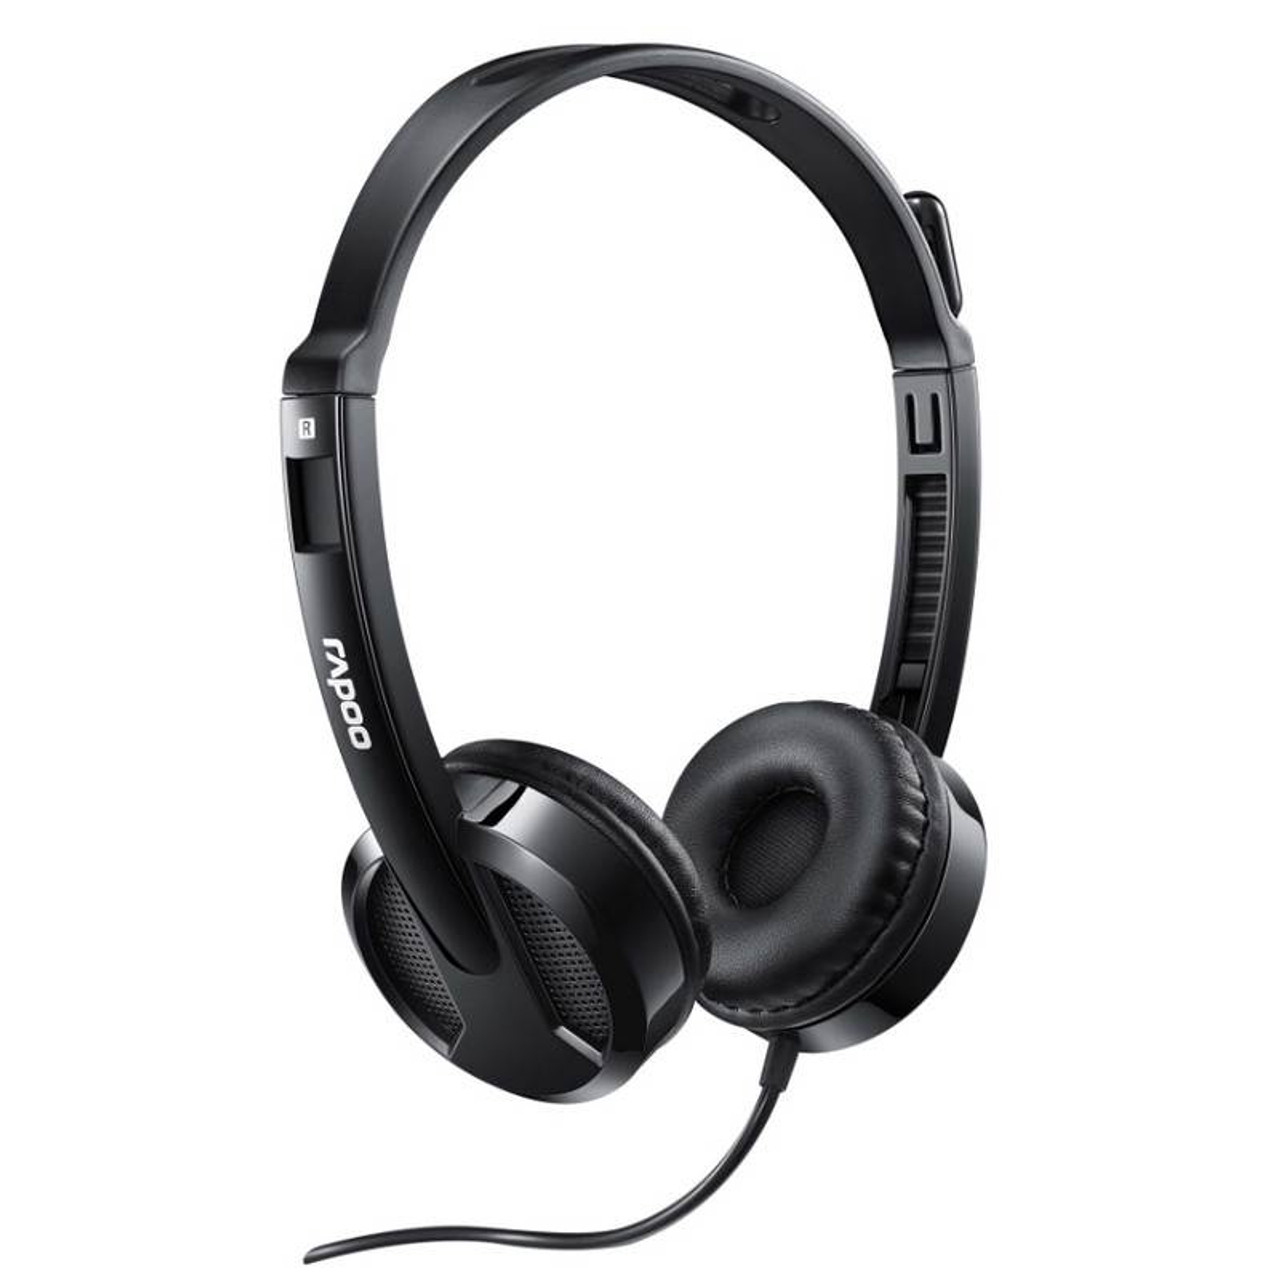 Image for Rapoo H100 Wired Stereo Headset CX Computer Superstore